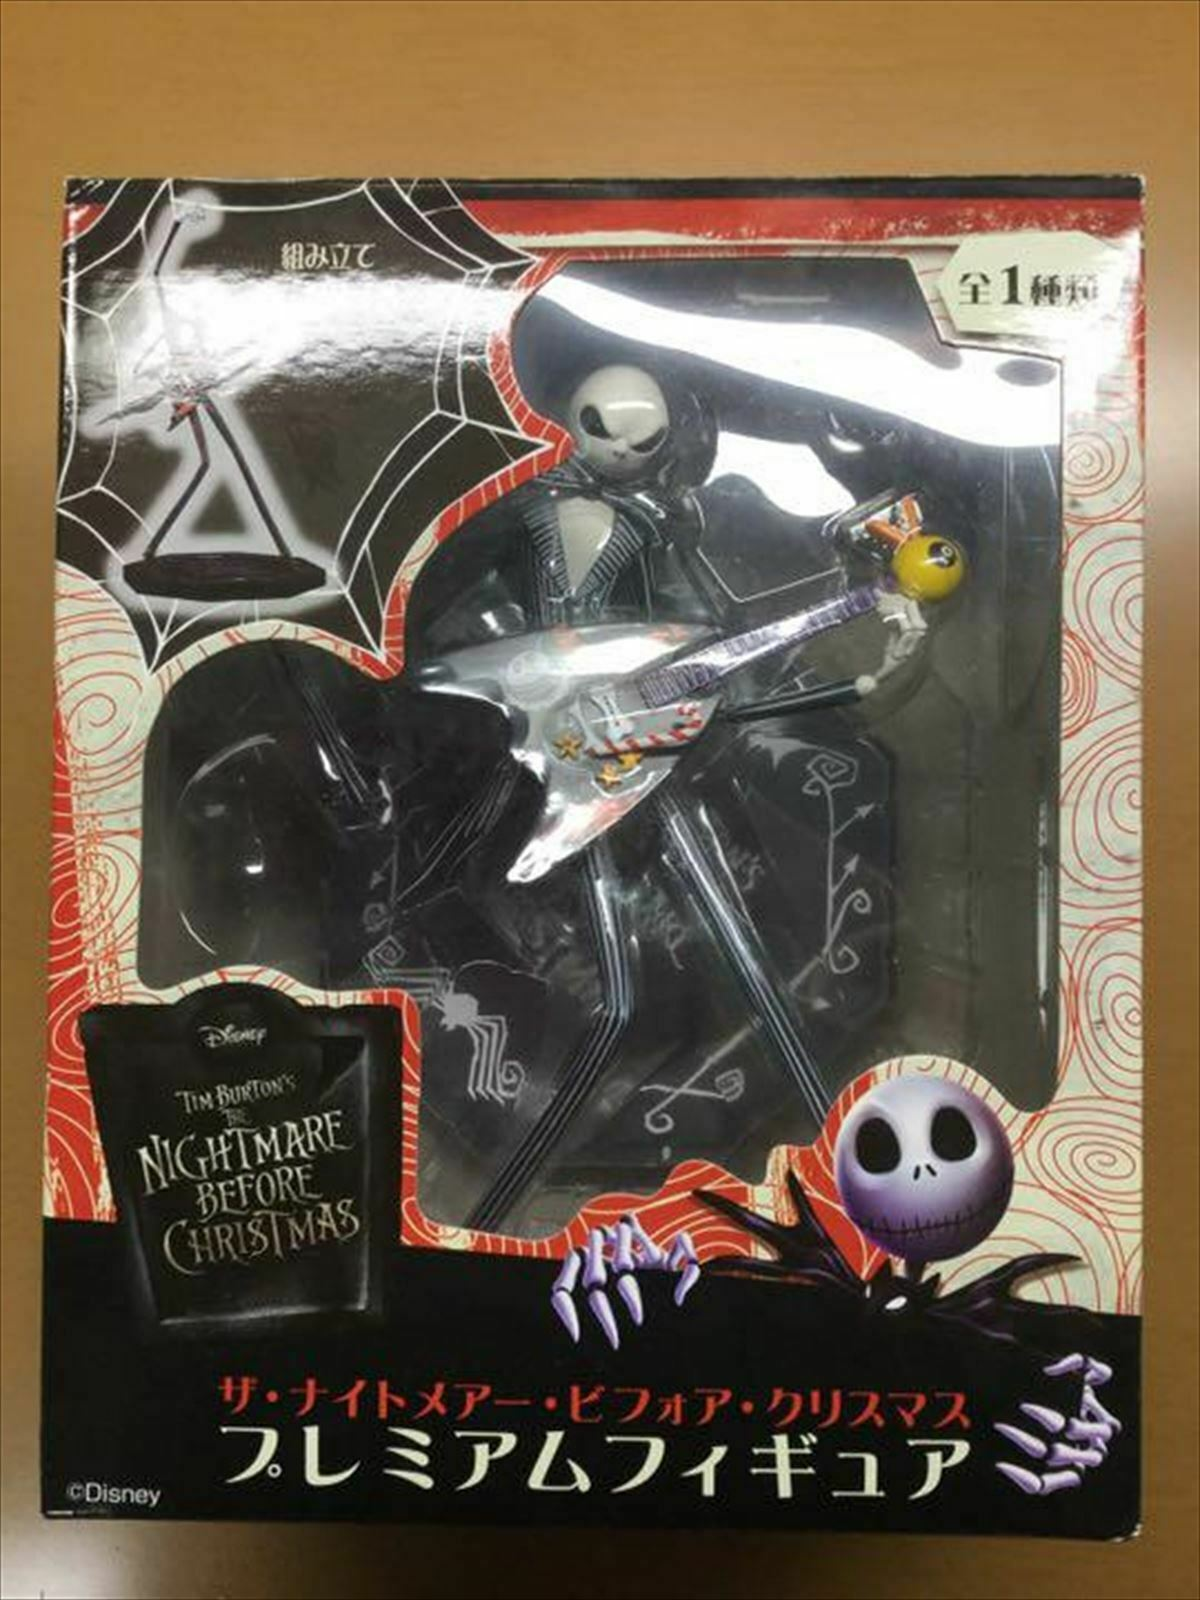 The Nightmare Before Christmas Premium Figura Sega Jack Skellington Guitar F S